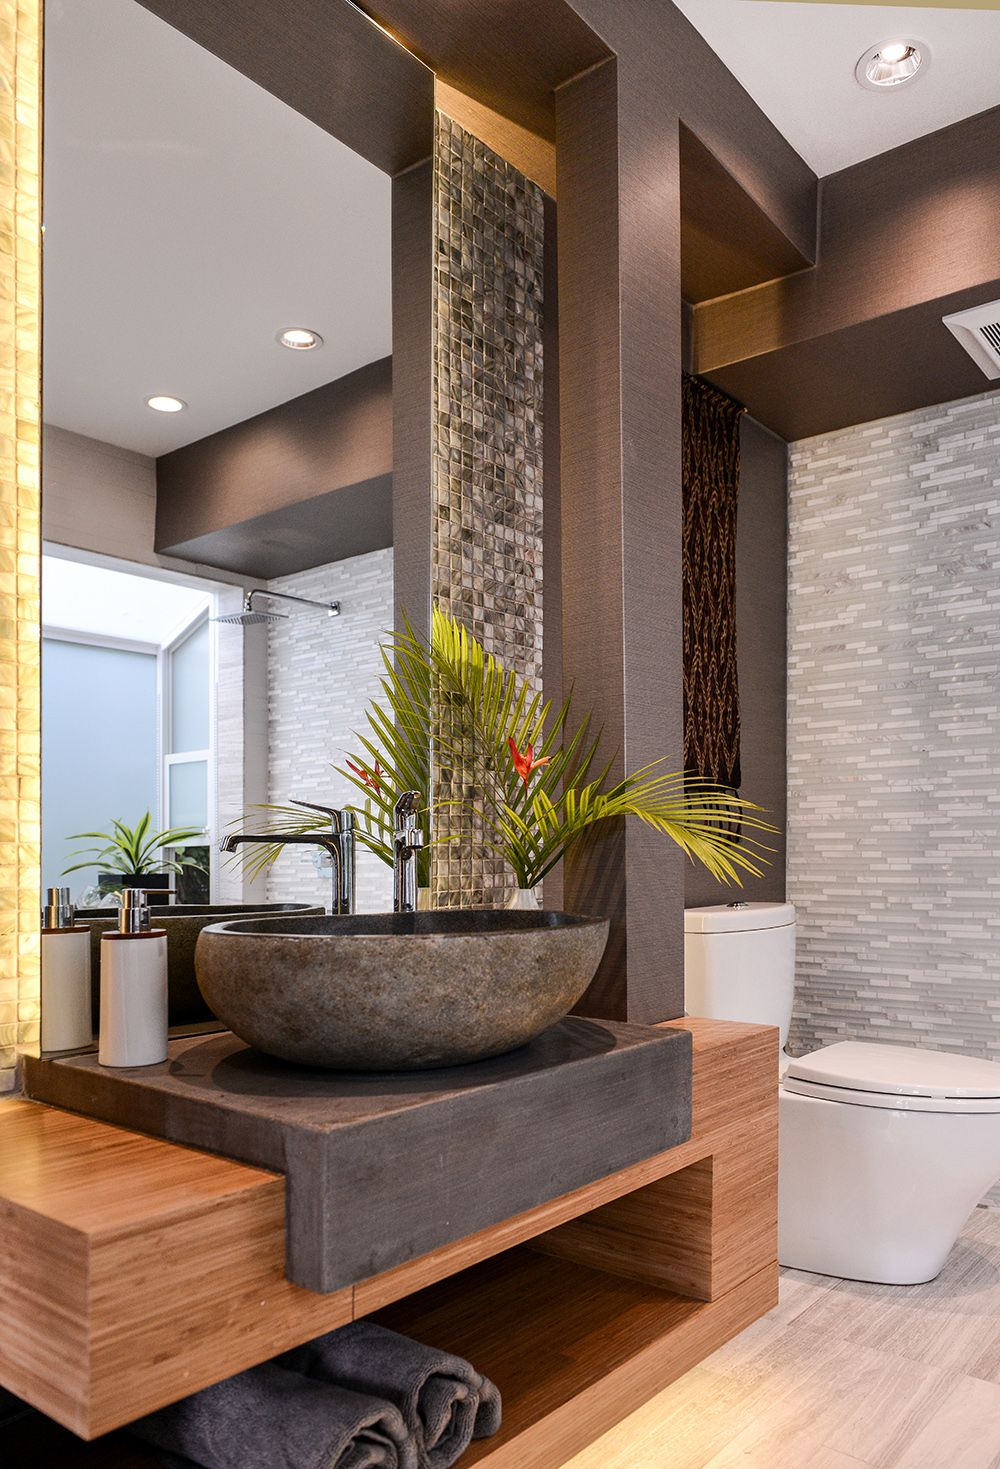 LOVE THIS FABULOUS LOOKING BATHROOM WITH STONE